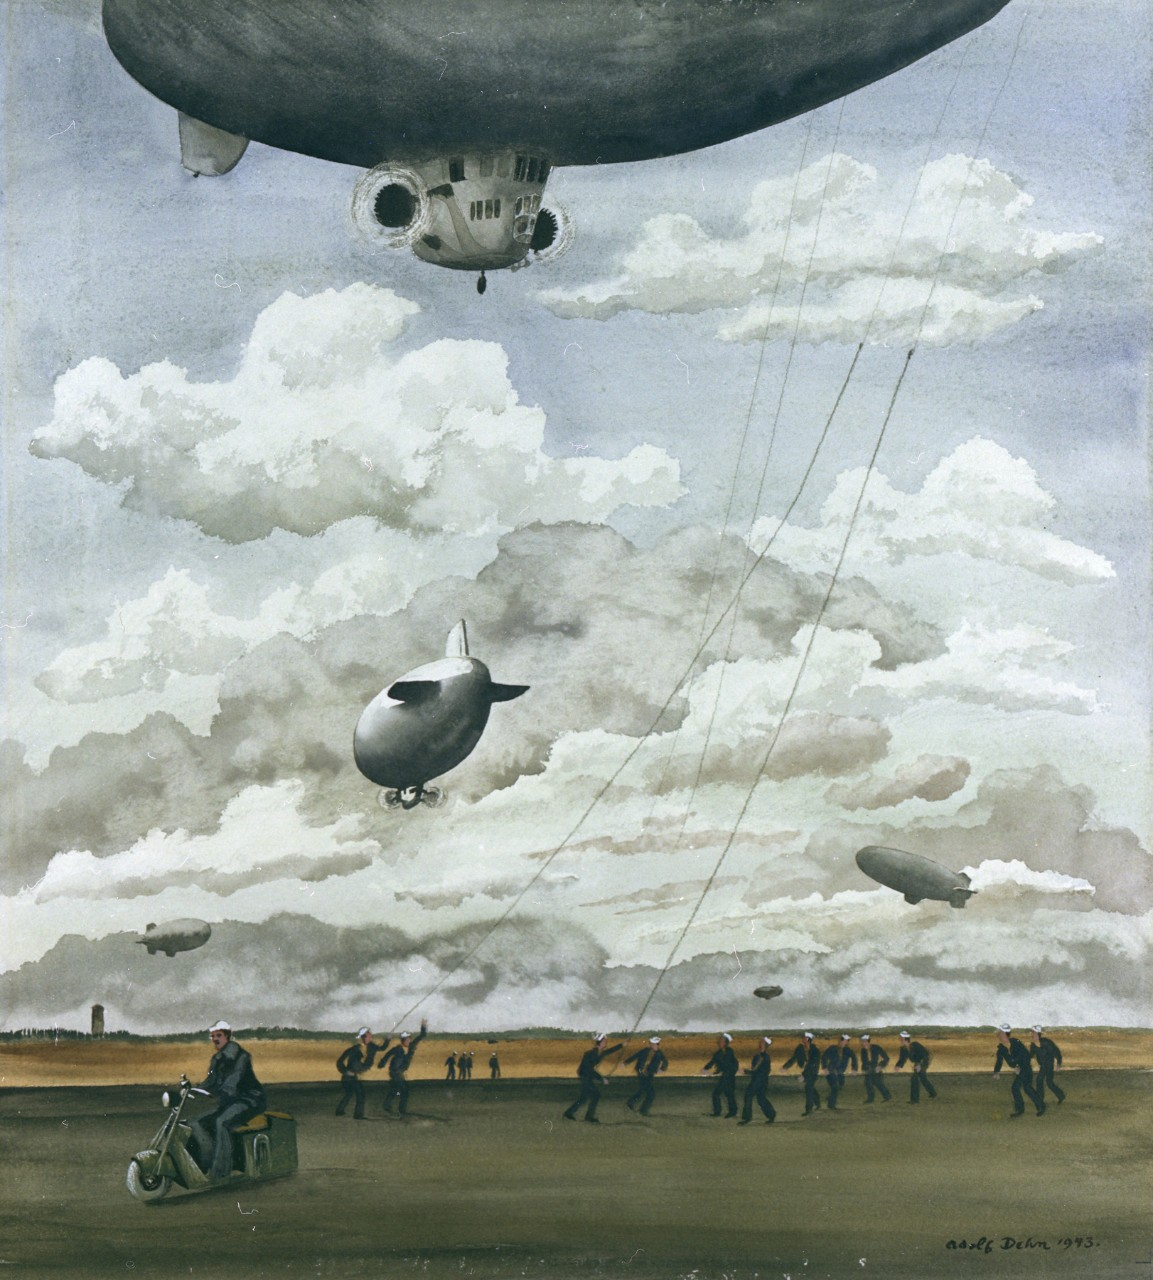 A ground crew grabs the lines from the blimp